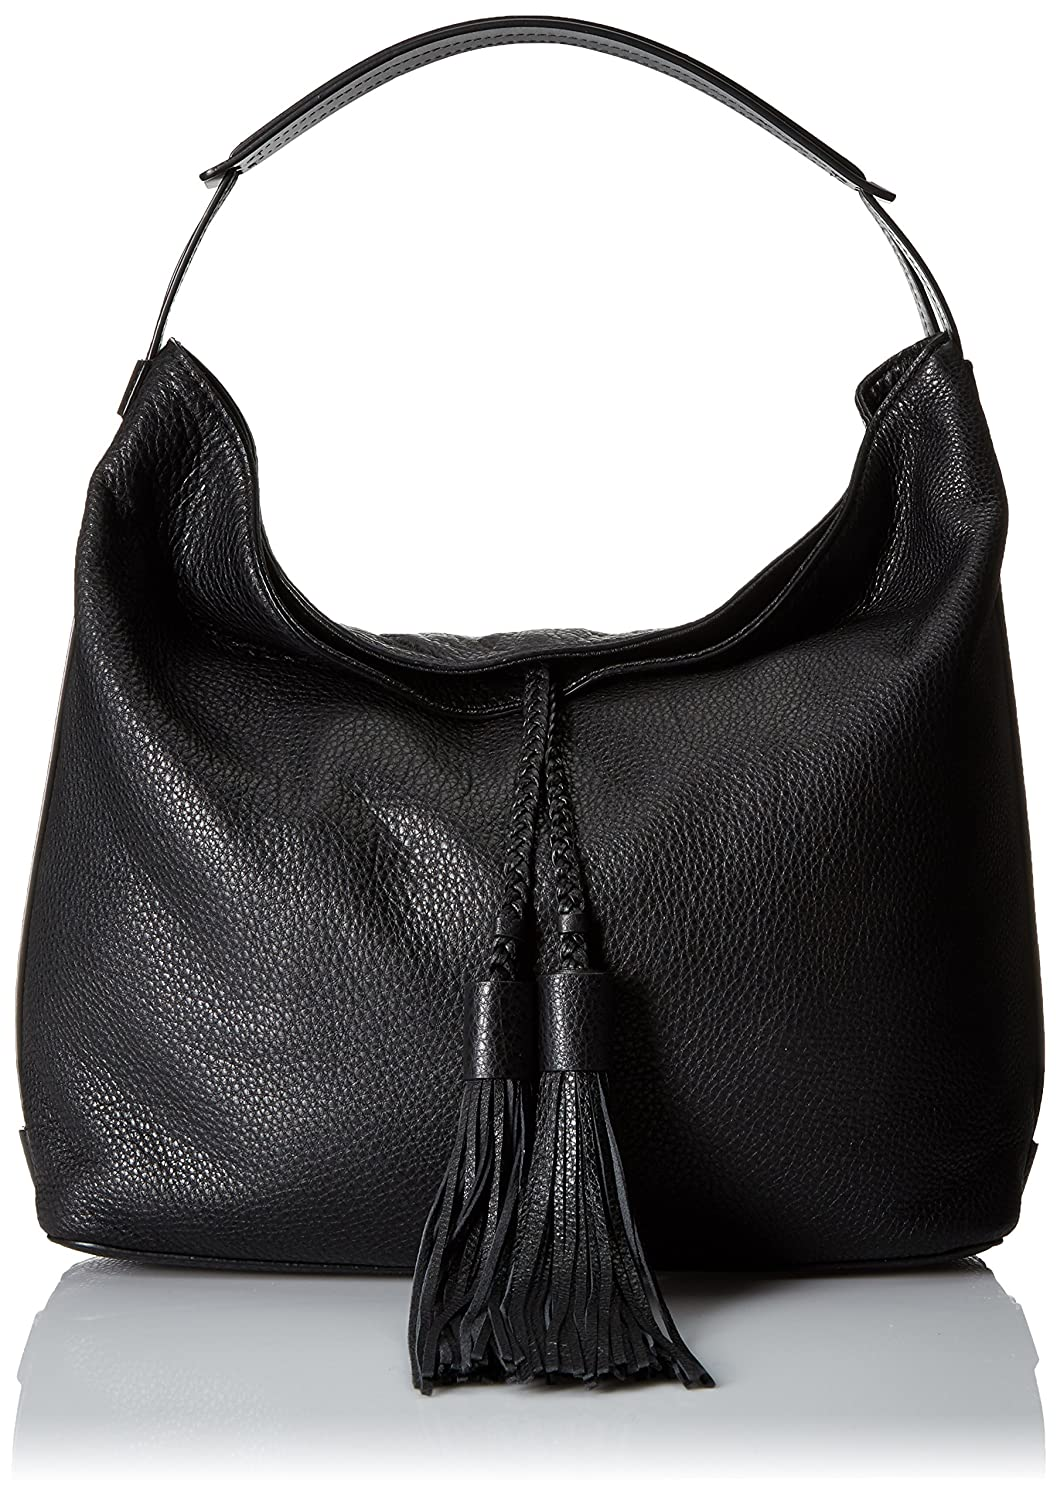 Rebecca Minkoff Women's Large Isobell Leather Bag Top-Handle Hobo B016A55T4A ブラック